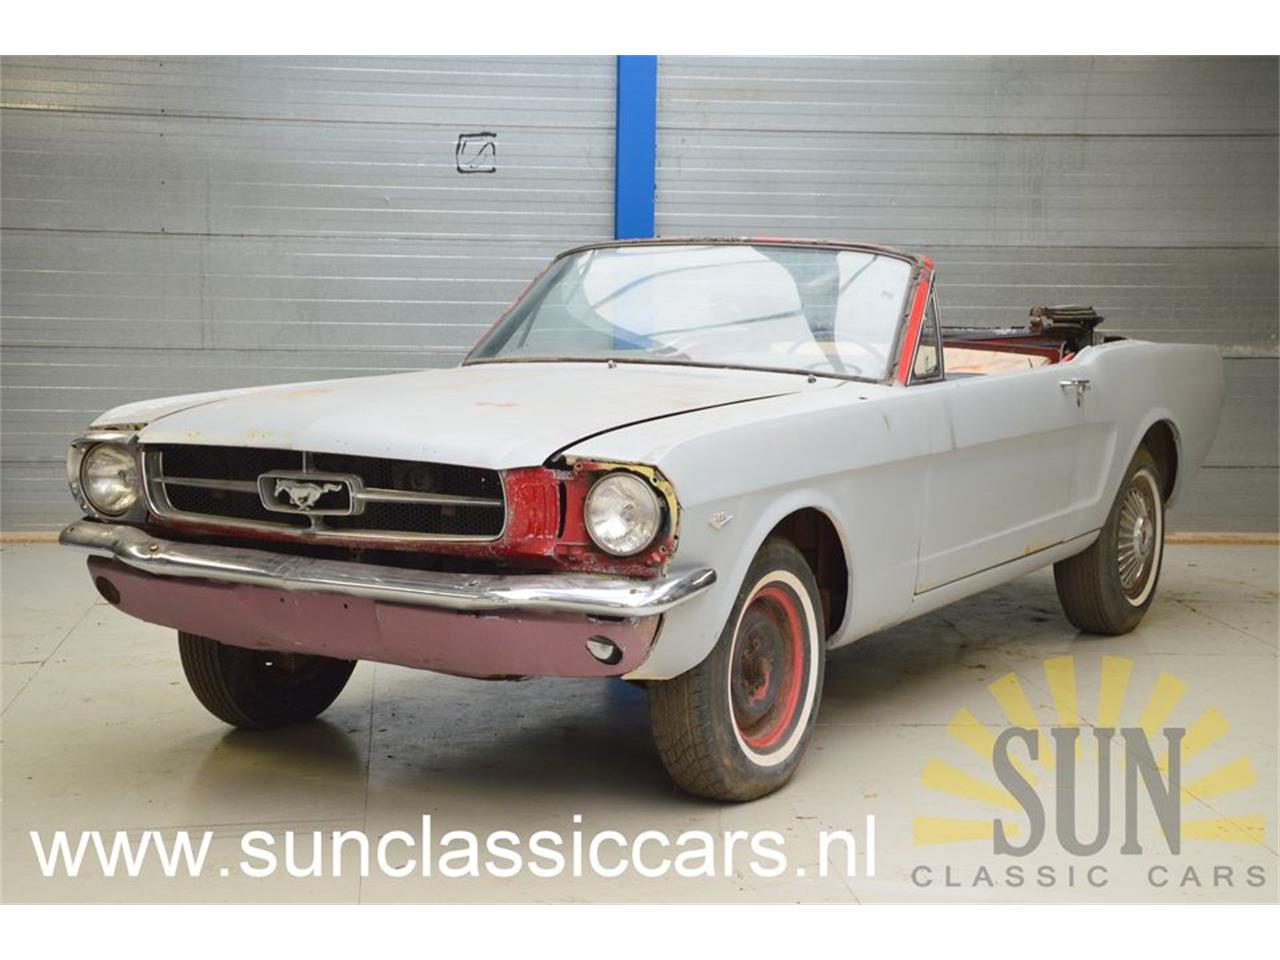 Large picture of 65 mustang pw3u